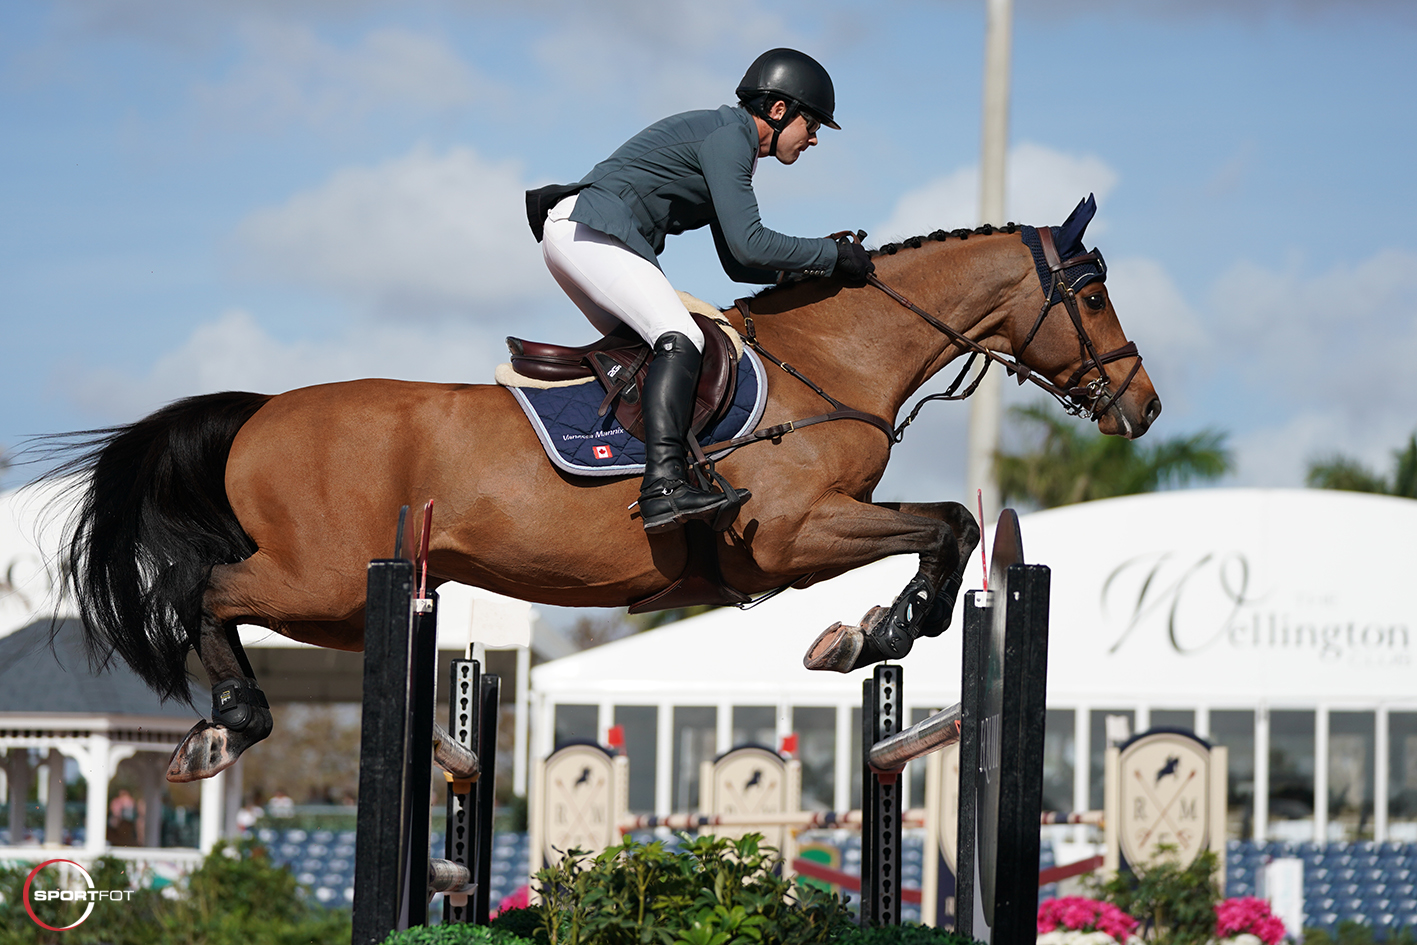 Conor Swail and GK Coco Chanel 306_7590 Sportfot